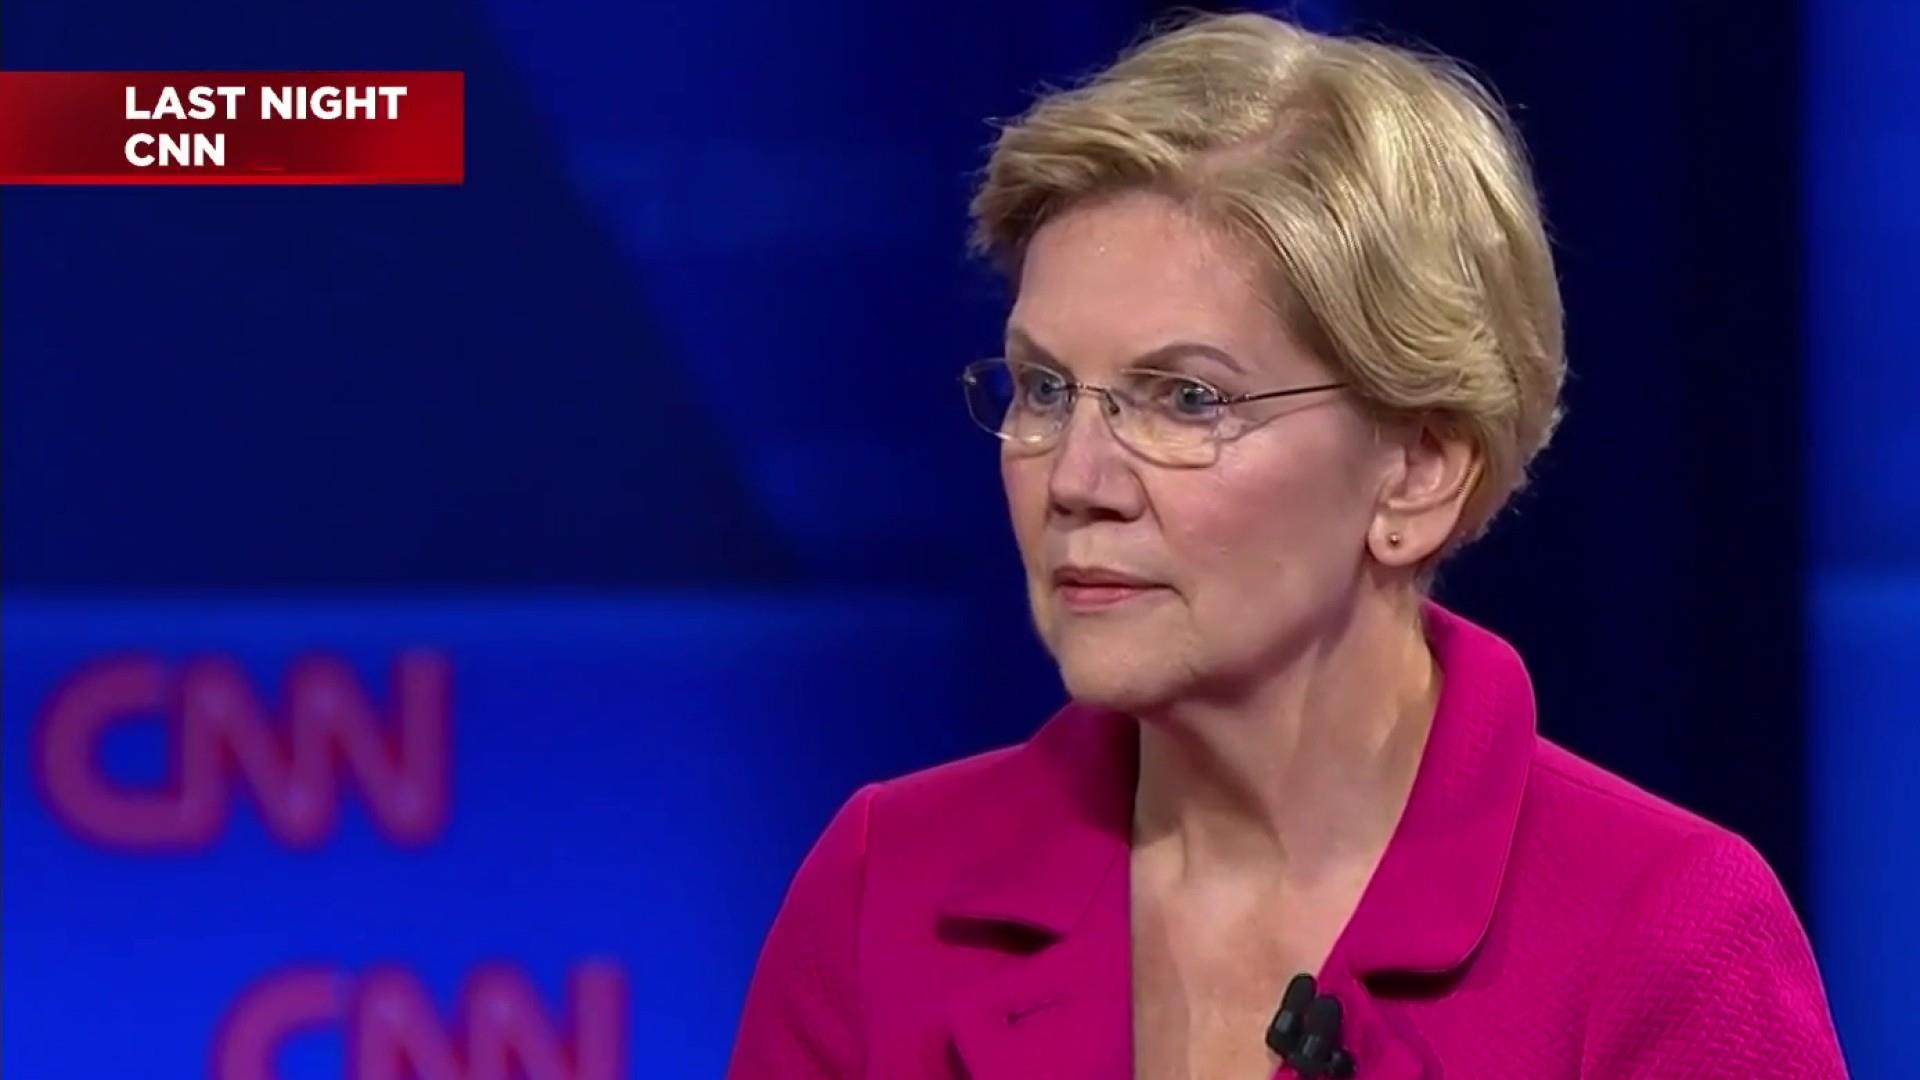 Elizabeth Warren's comeback at CNN LGBTQ forum goes viral